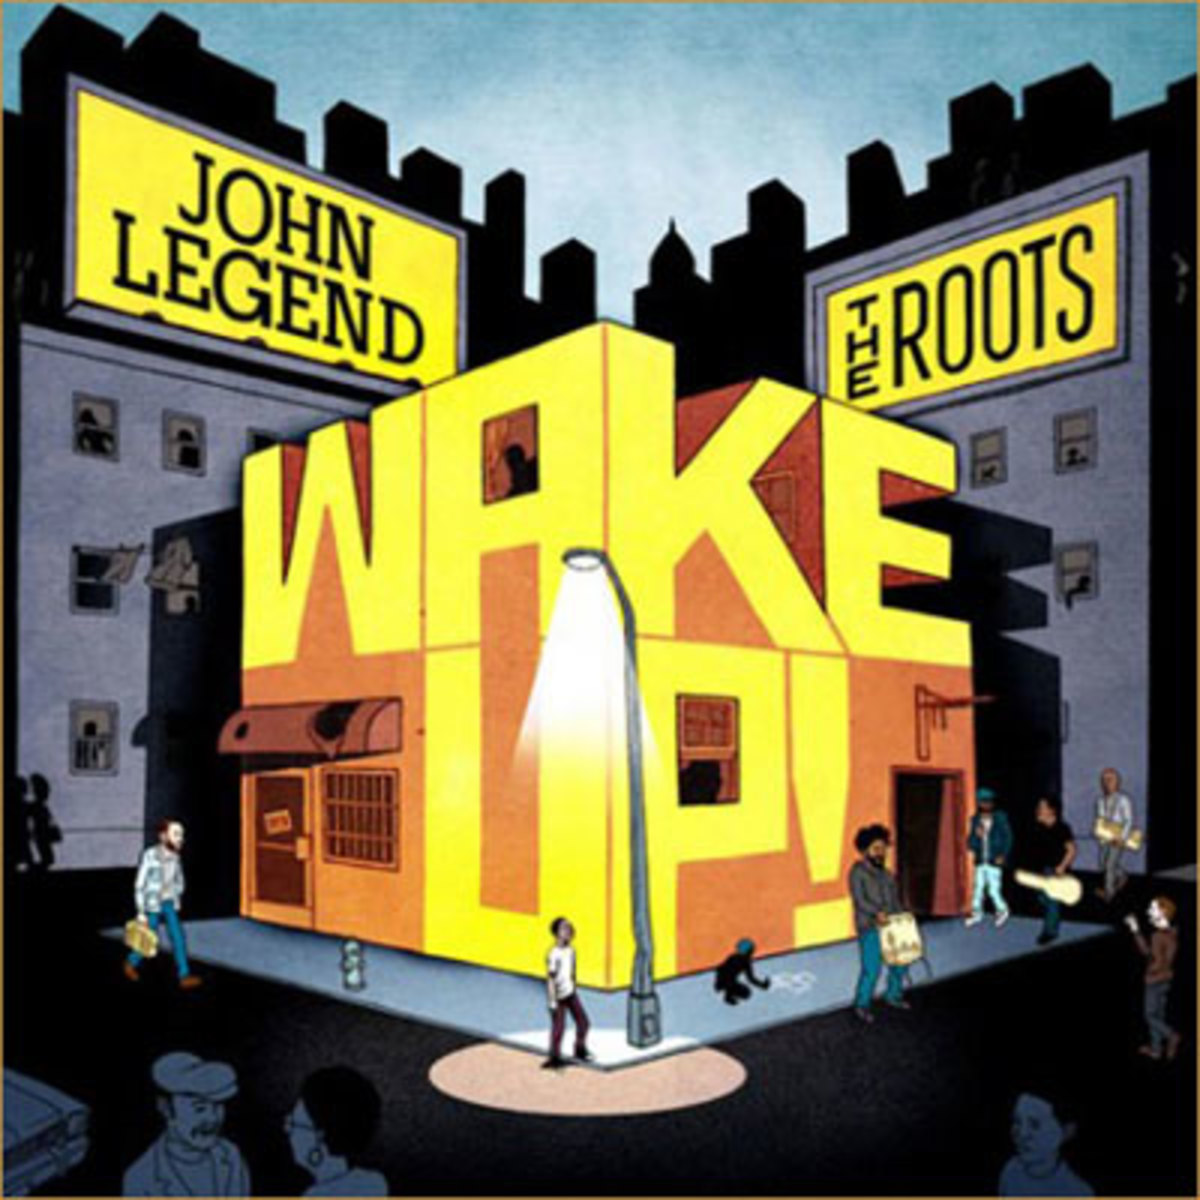 johnlegendroots-wakeup.jpg